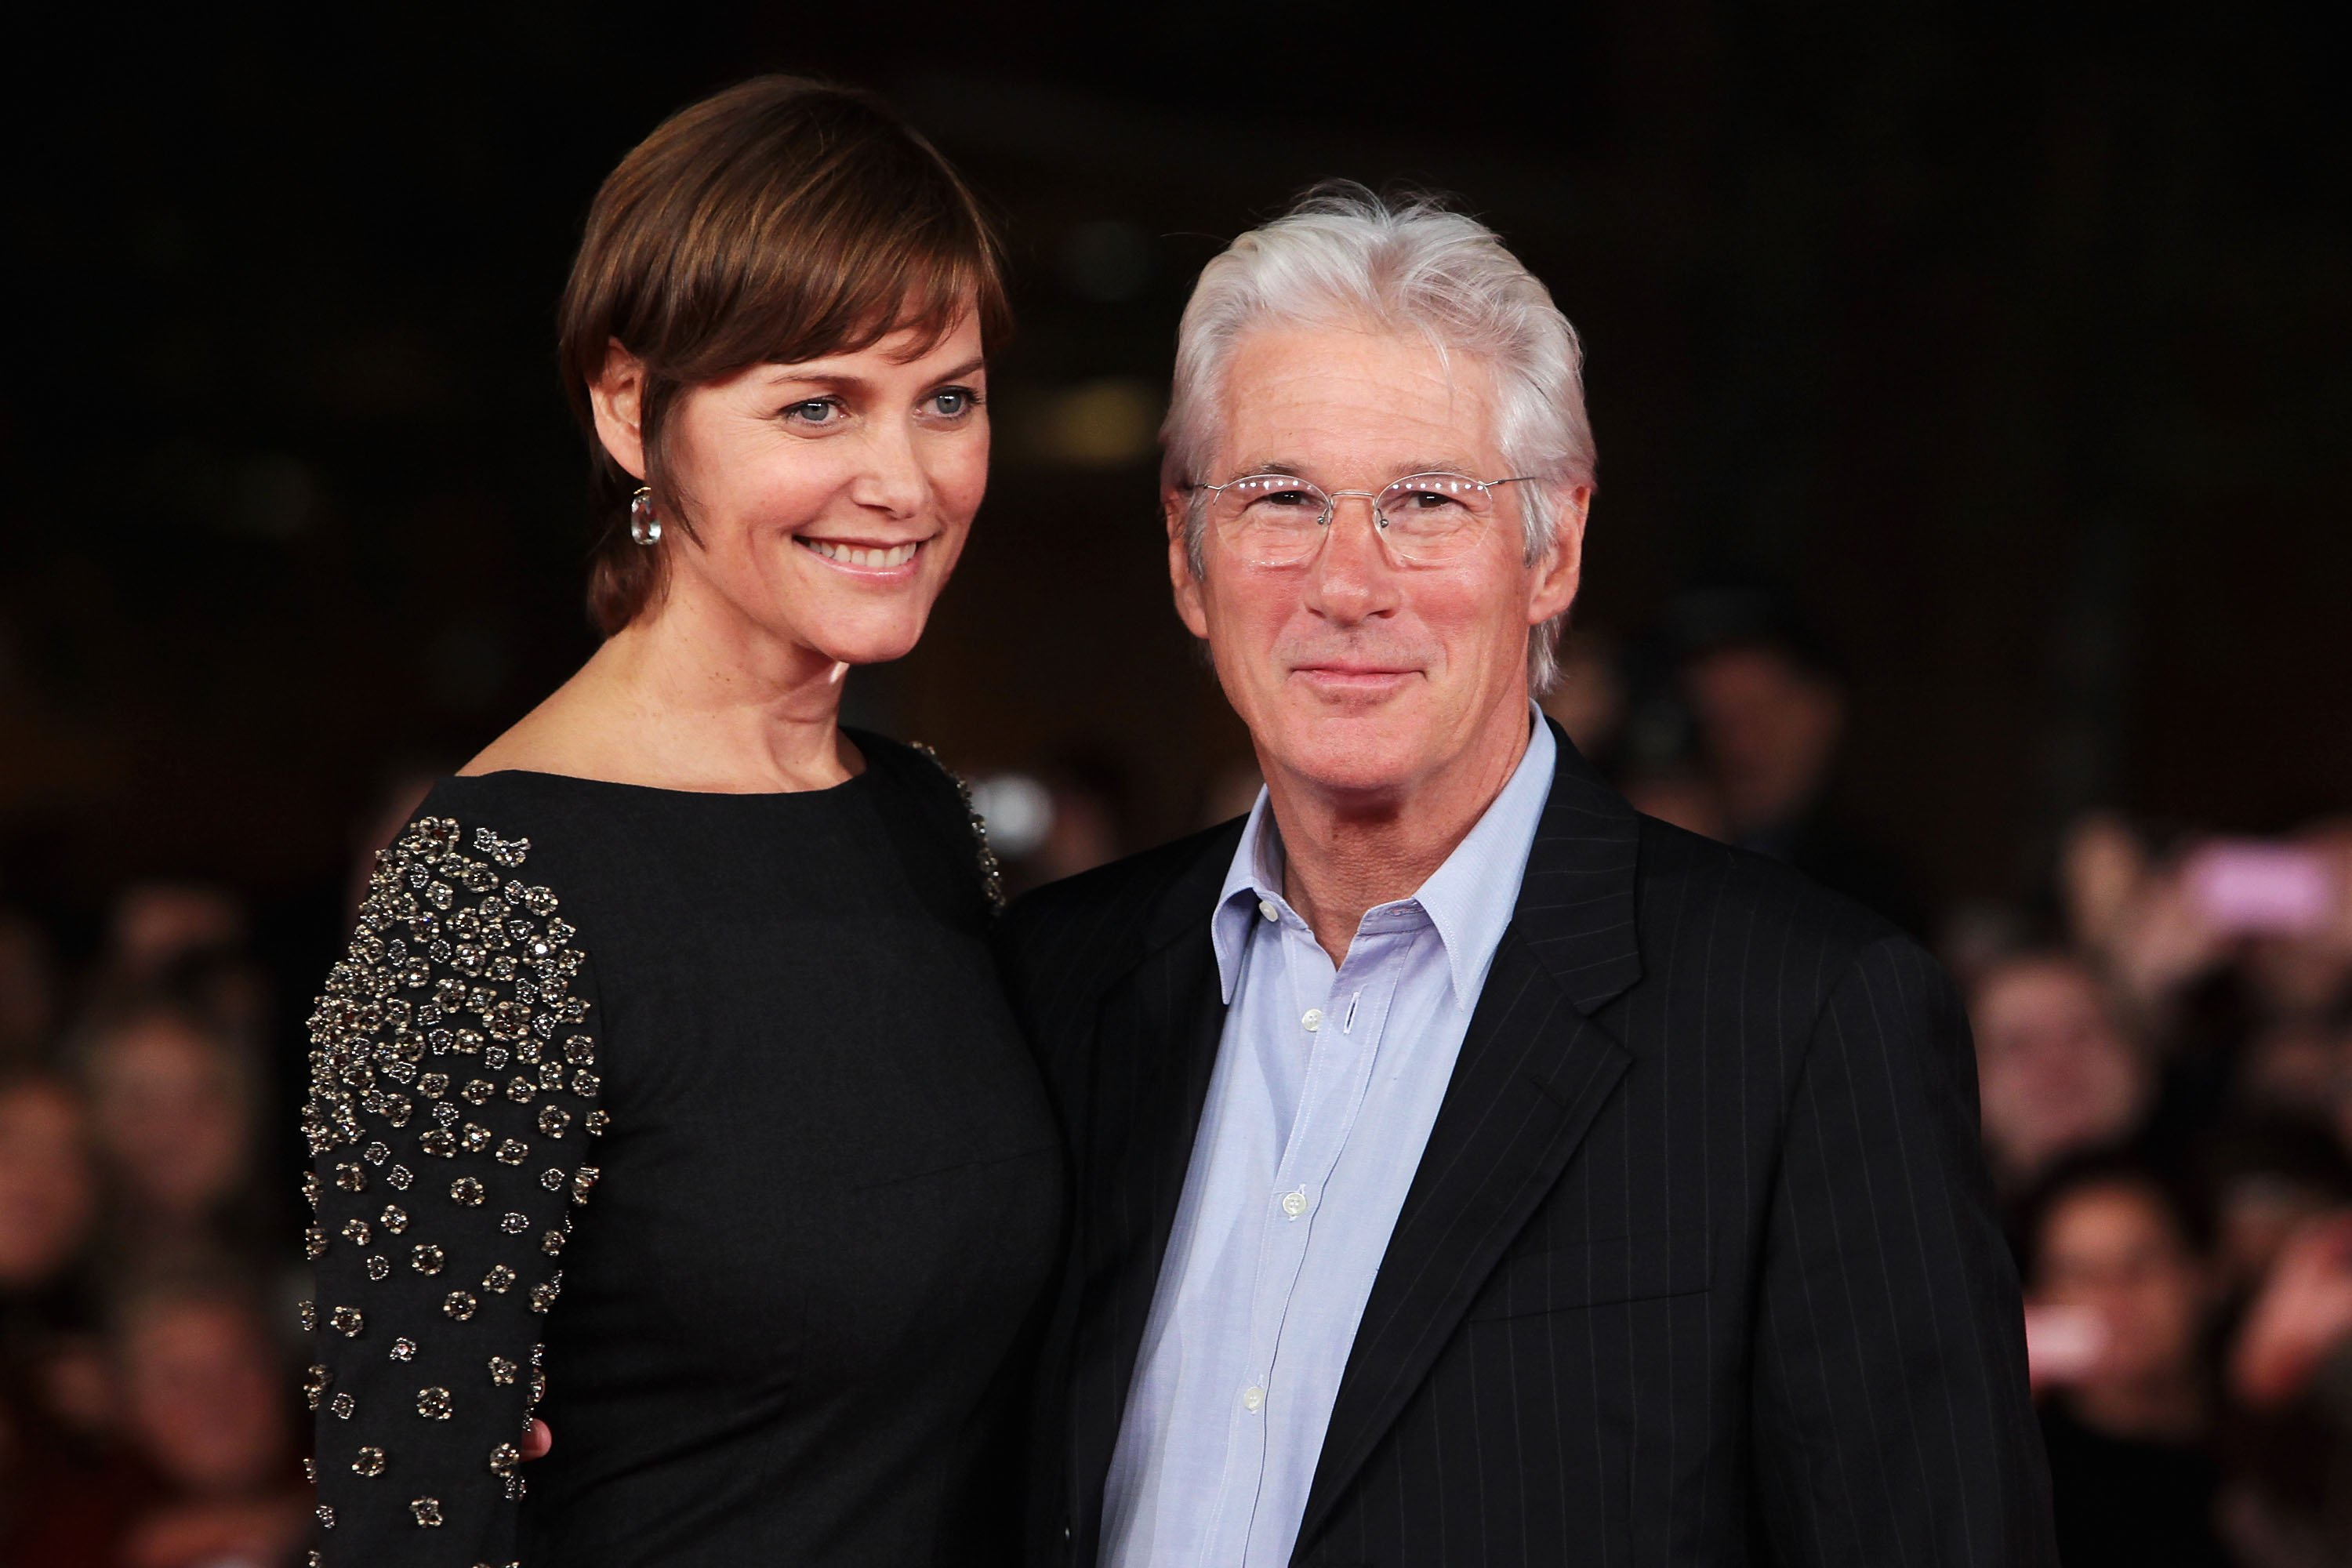 Carey Lowell and Richard Gere walk the red carpet during the 6th International Rome Film Festival on November 3, 2011, in Rome, Italy. | Source: Getty Images.